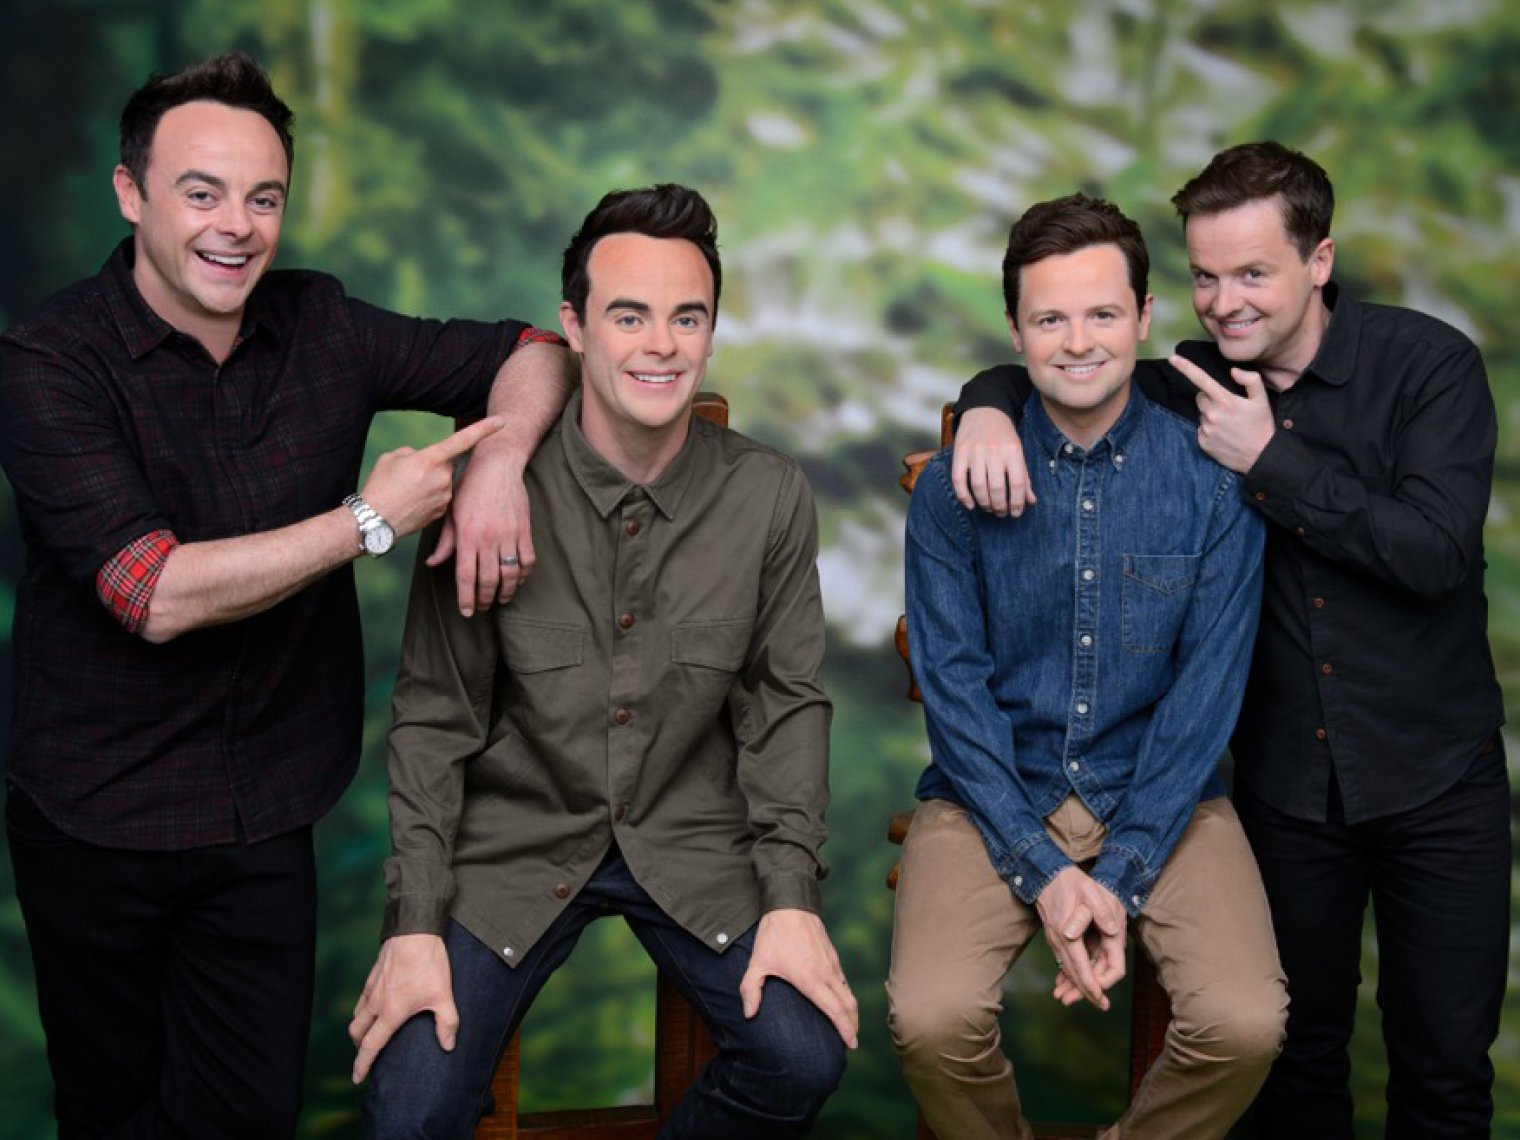 Ant & Dec meet their match...